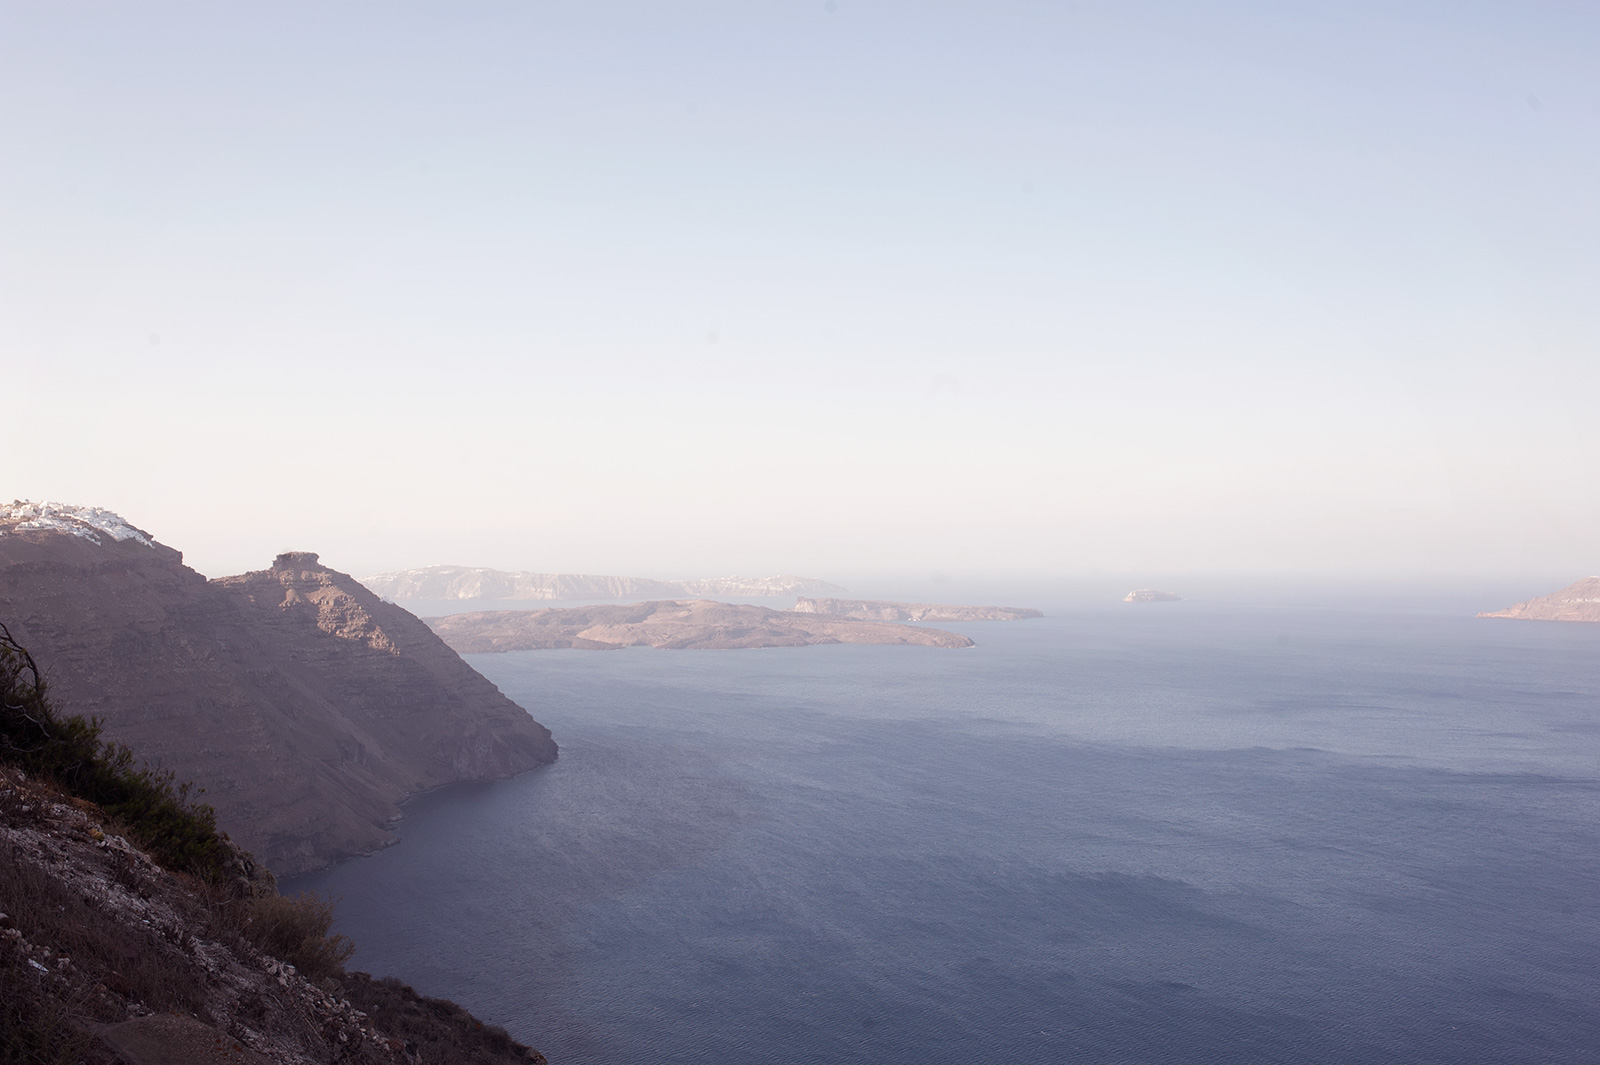 The beauty of the Caldera of Santorini